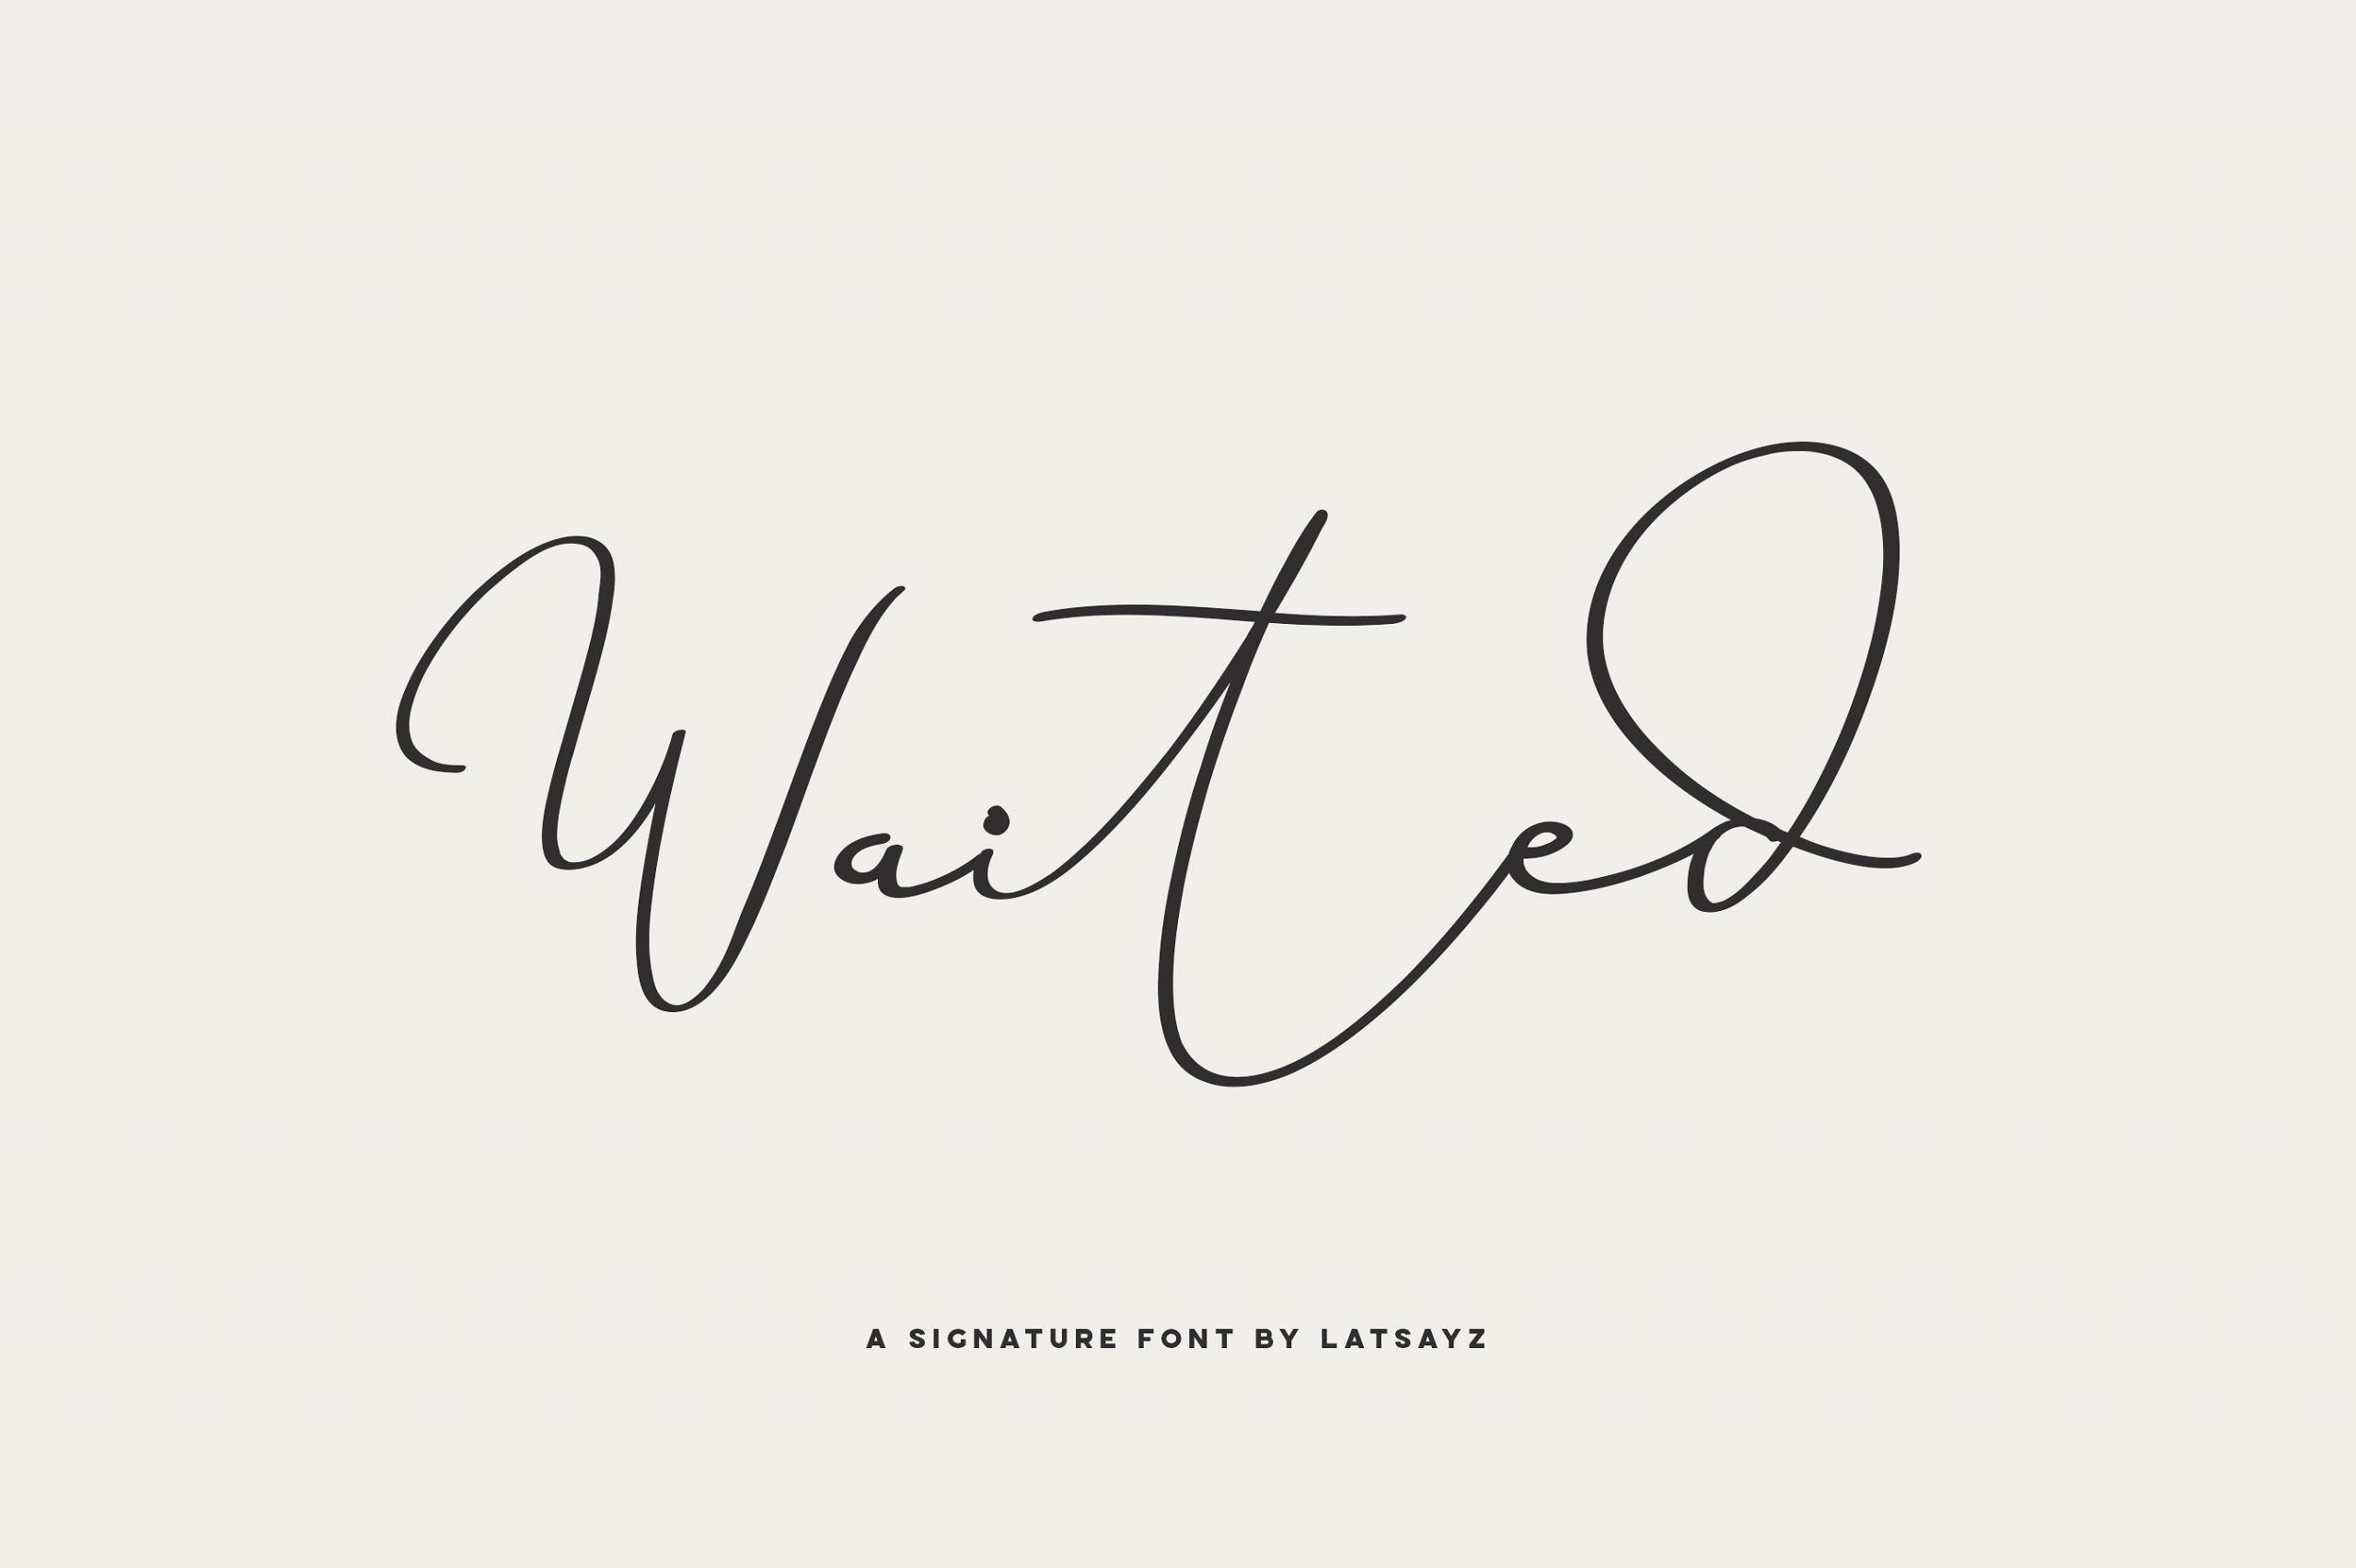 miss-waited-signature-font